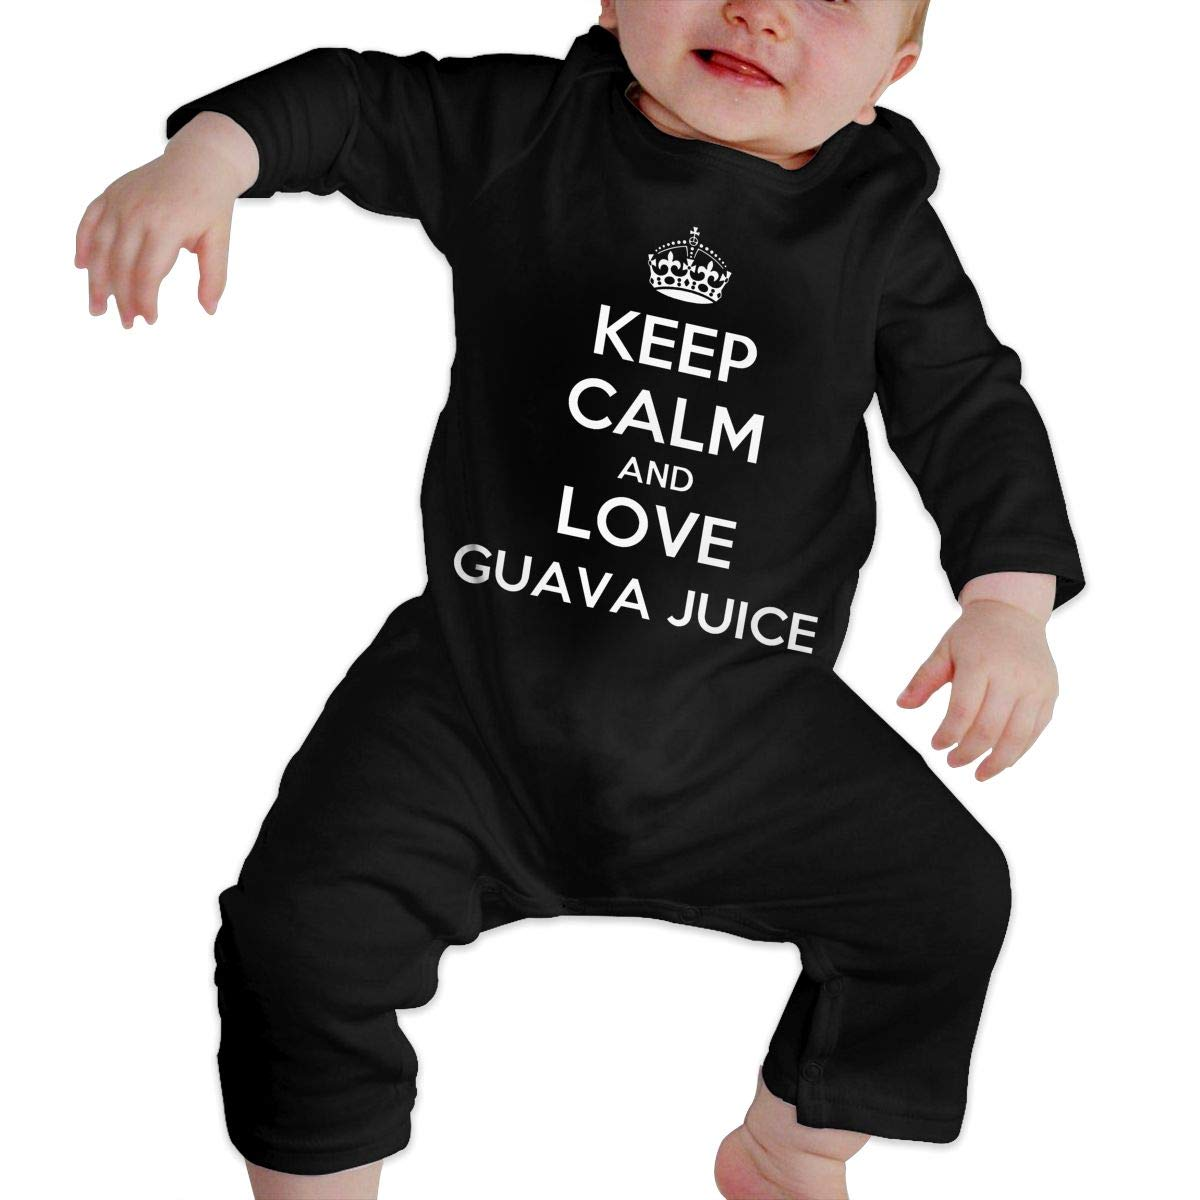 Keep Calm and Love Guava Juice Long Sleeve Baby Jumpsuit Cute Toddler The Four Seasons Bodysuits